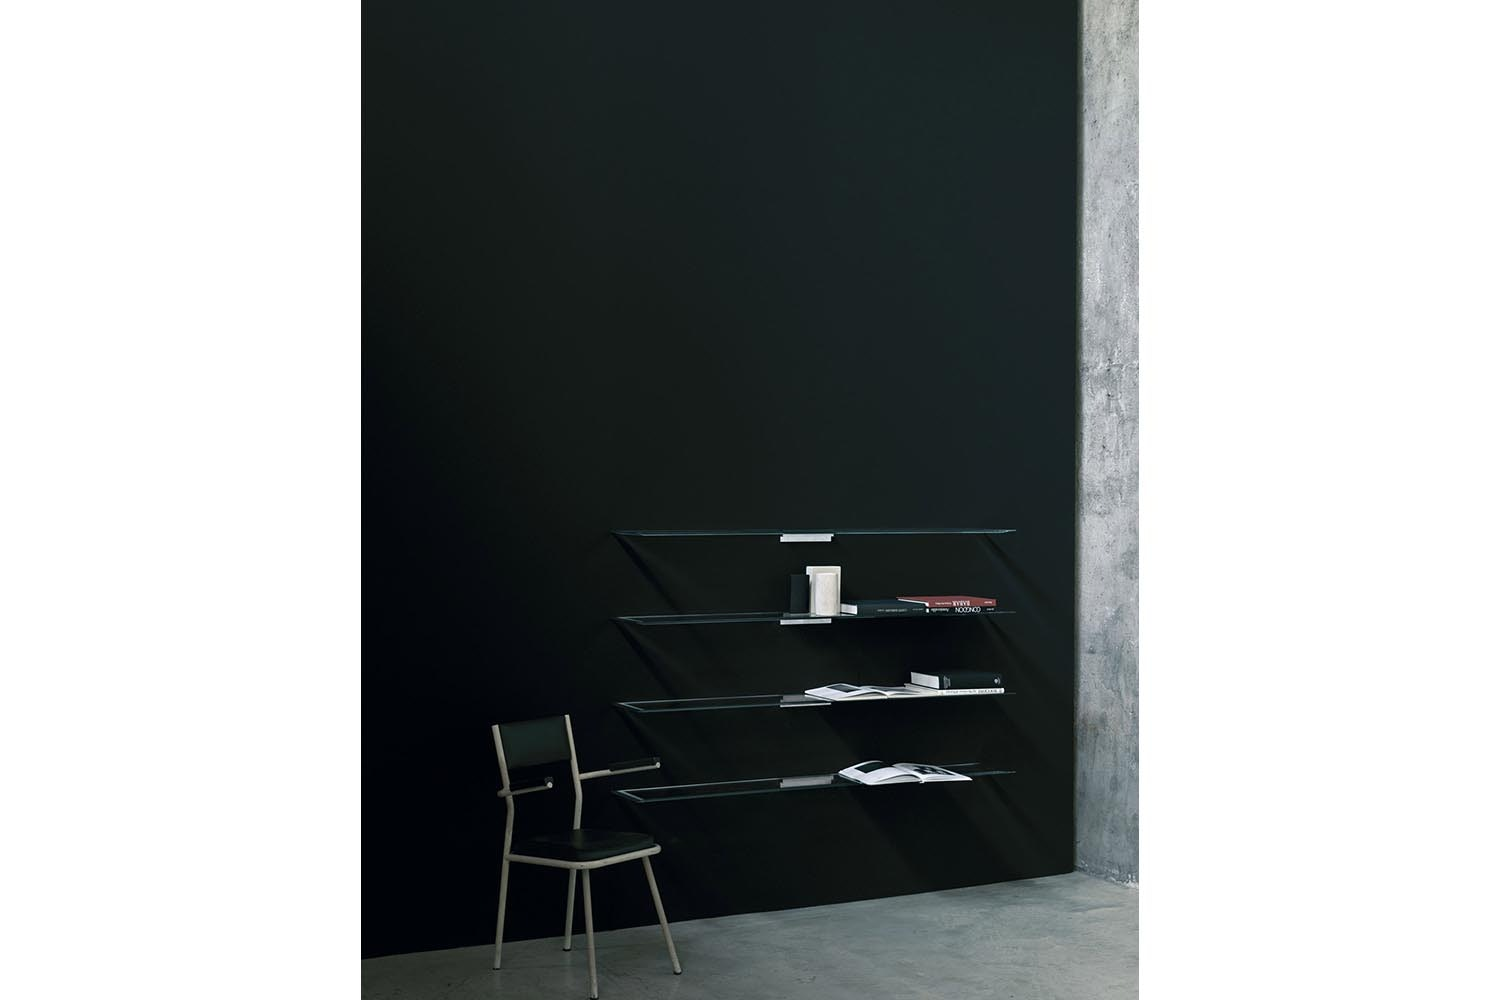 Shine Wall Mounted Shelves by Lorenzo Arosio for Glas Italia